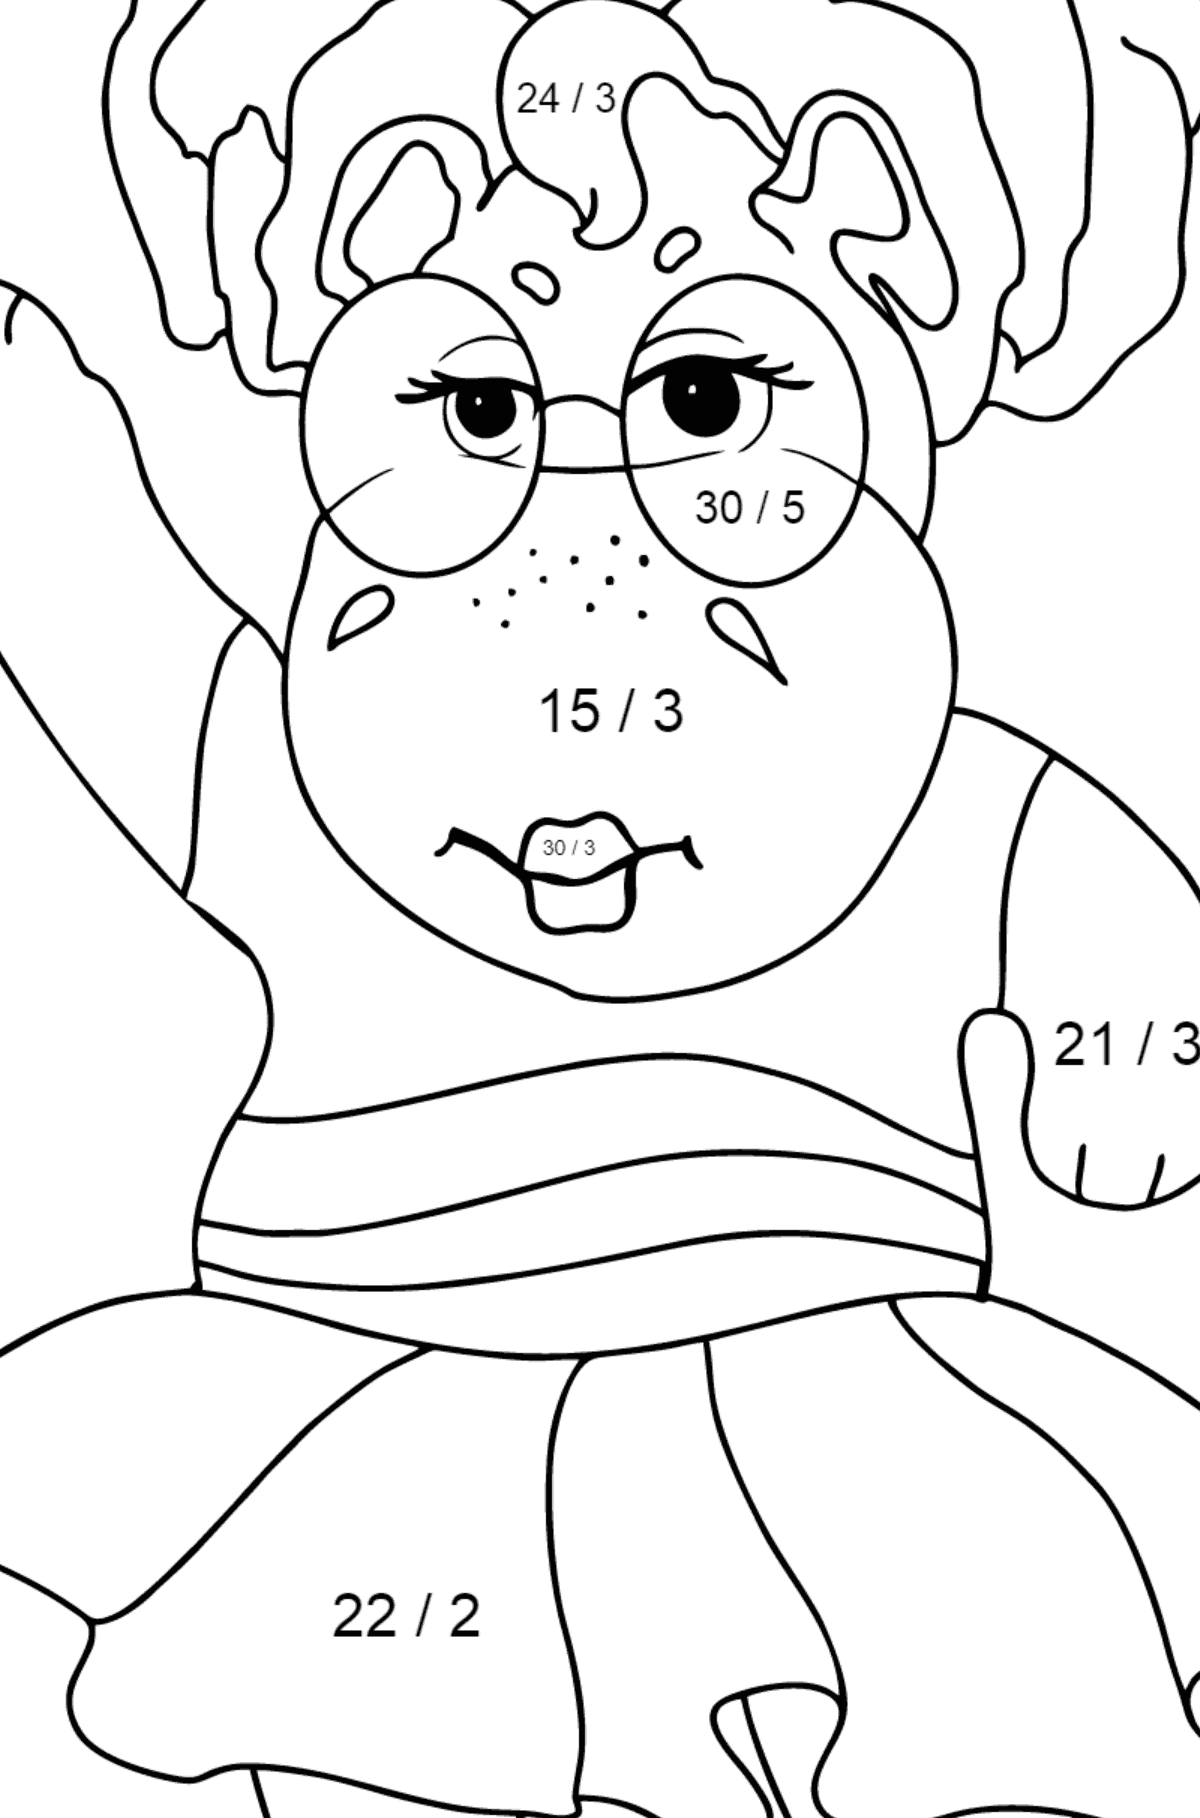 Coloring Page - A Hippo is Dancing in Sunglasses for Children  - Color by Number Division